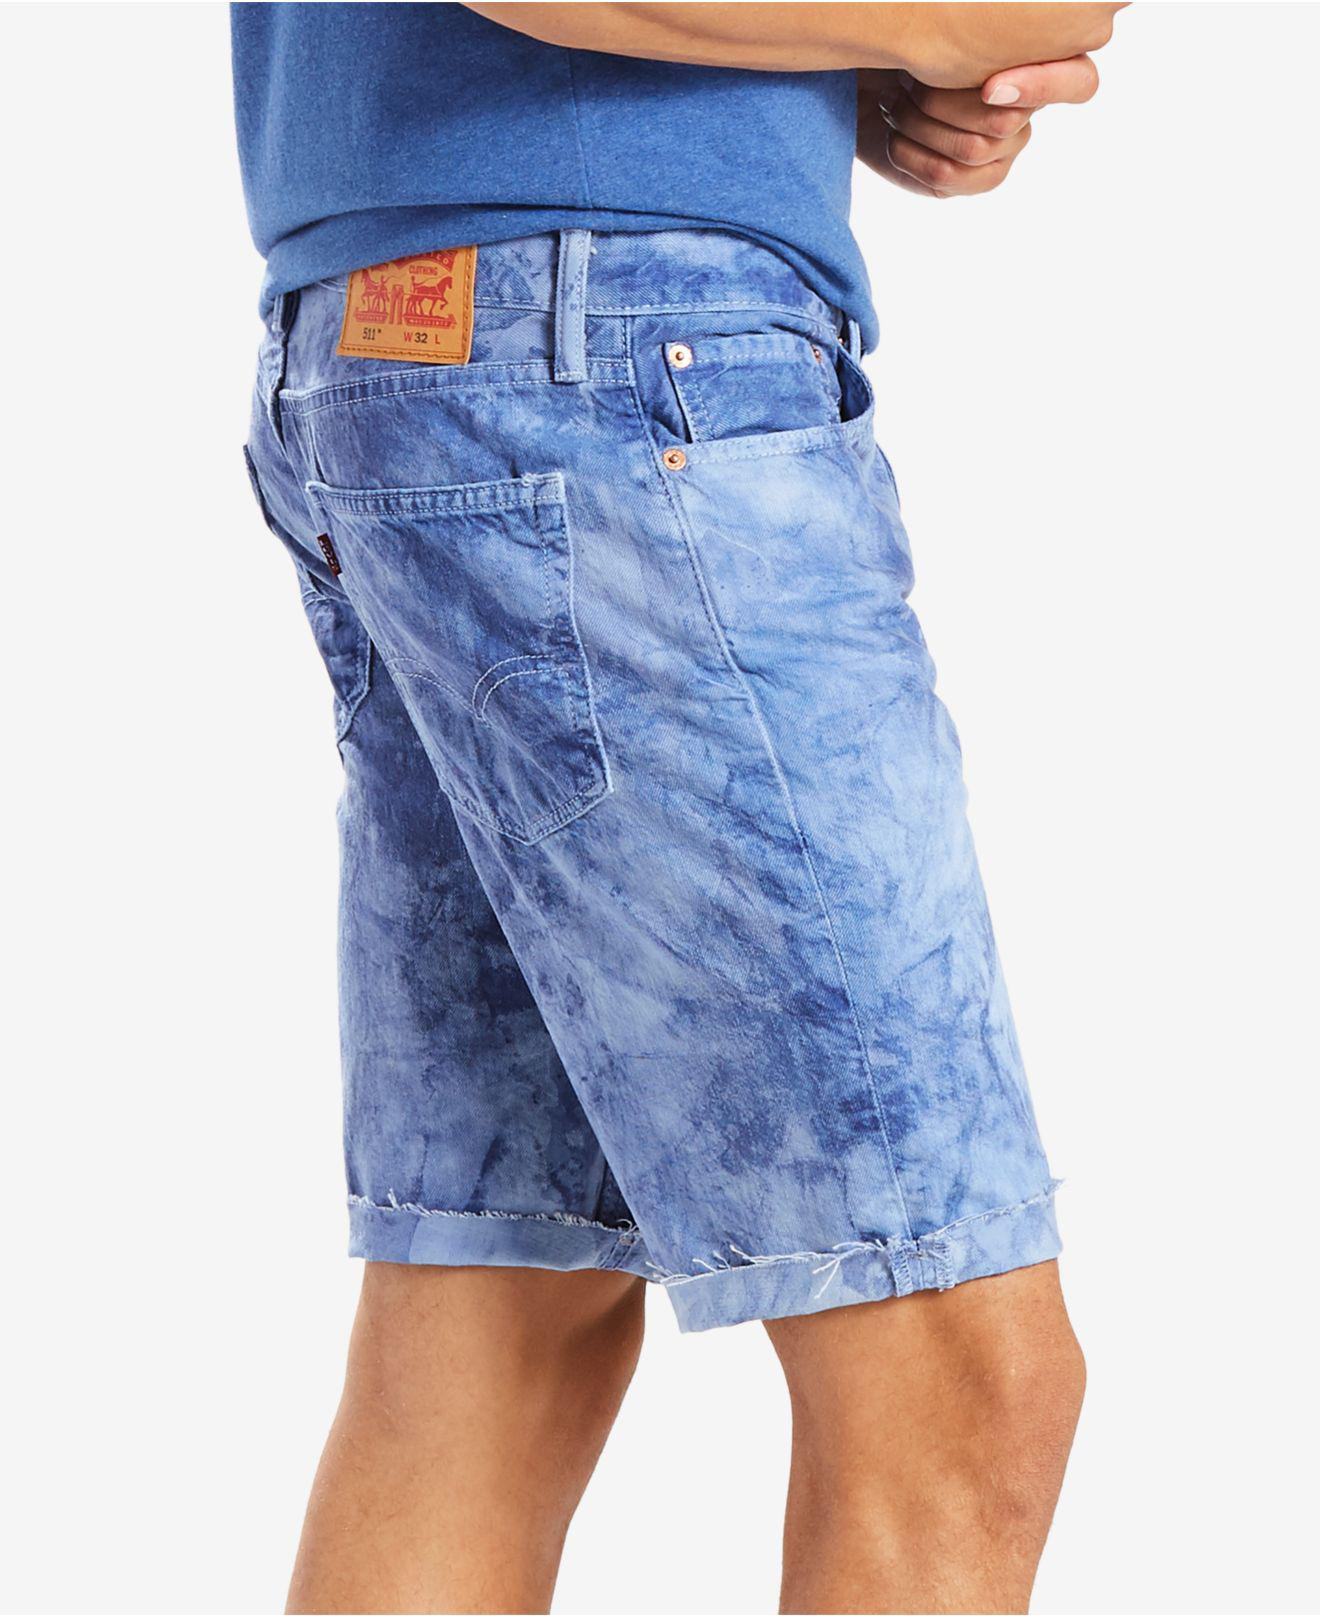 2d9d1973 Levi's 511 Slim-fit Cutoff Ripped Jean Shorts in Blue for Men - Lyst